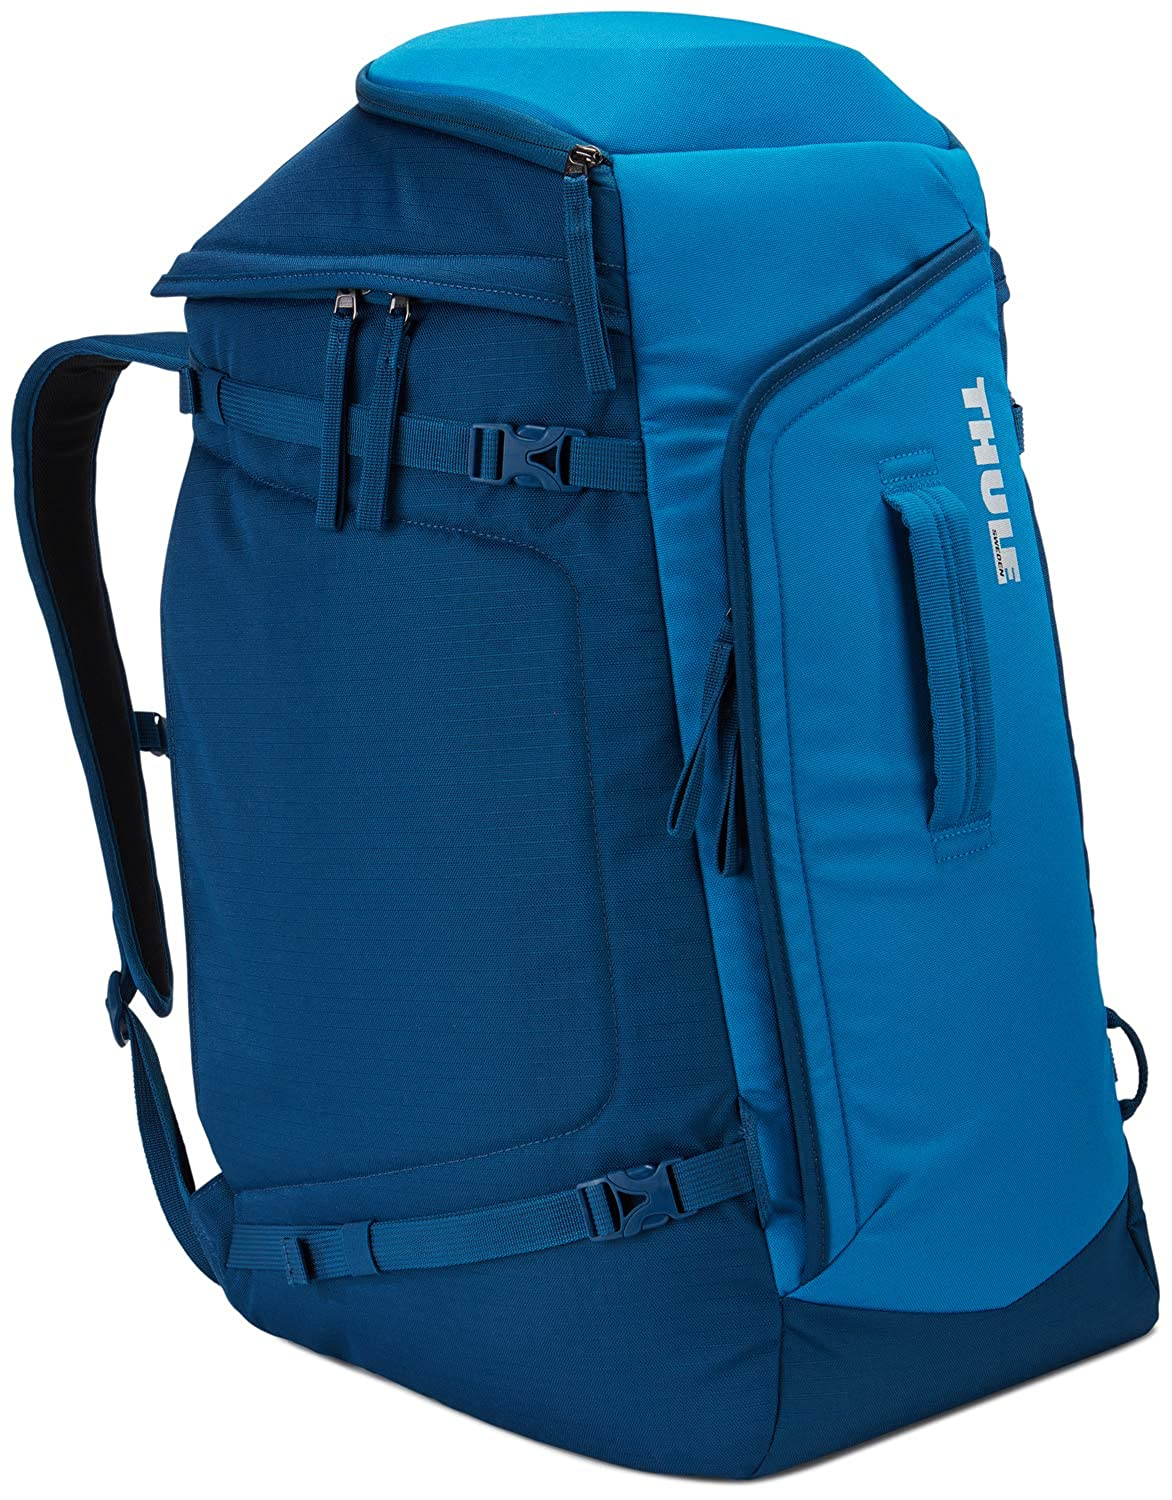 Thule RoundTrip 60L Backpack Snow Boot Bag